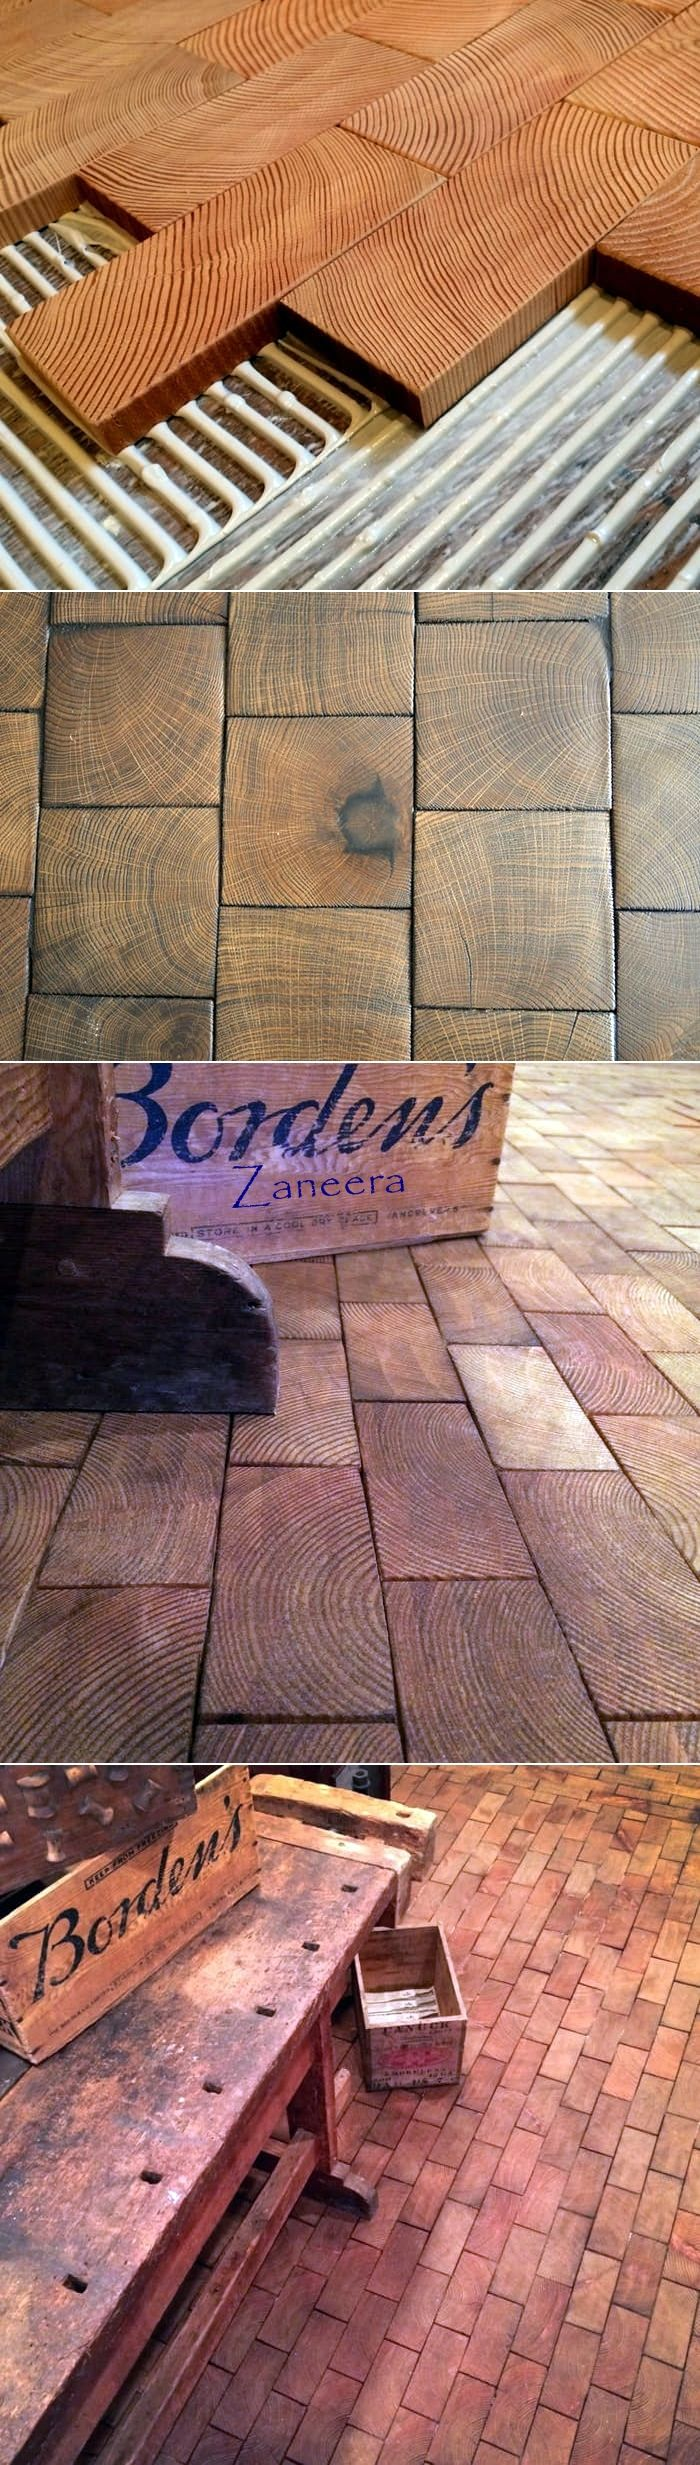 end-grain block flooring from http://www.apartmenttherapy.com/renovation-inspiration-cartolinas-diy-endgrain-block-flooring-198394